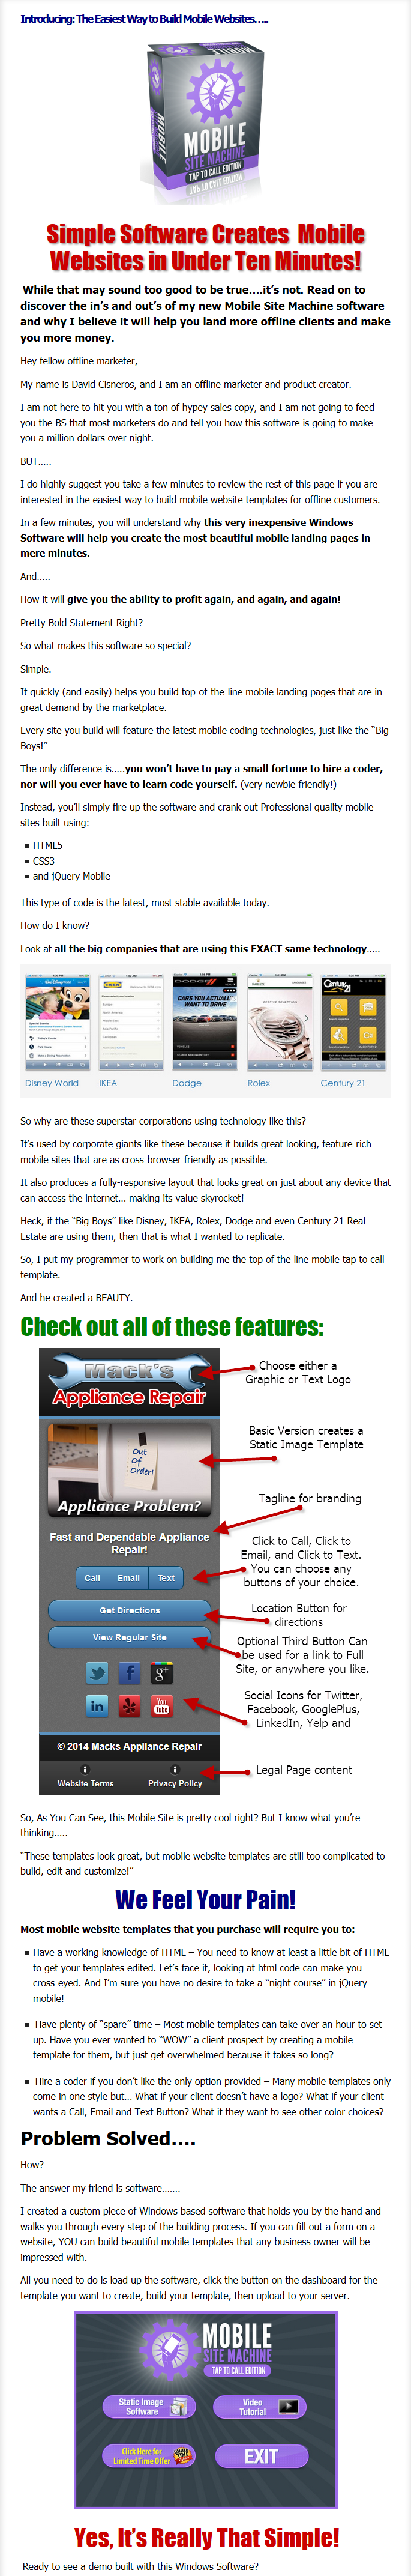 [GET] FREE Mobile Website Template Software: Build Mobile Templates and Make $$$